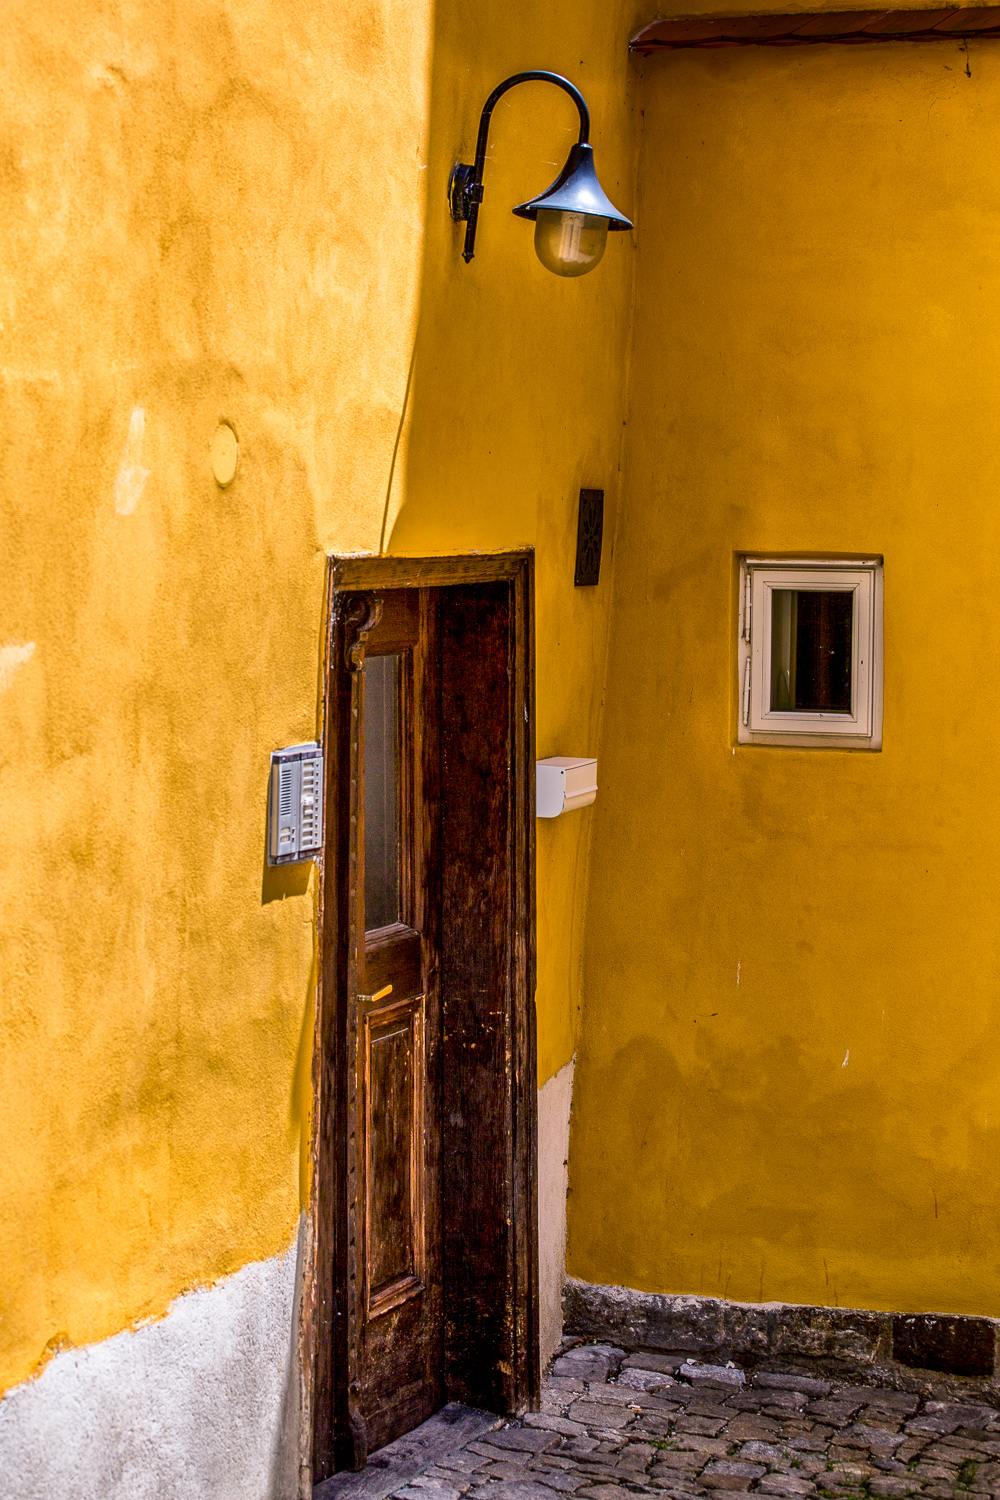 Yellow-Walls-Light-Doorway-Cesky-Krumlov.jpg